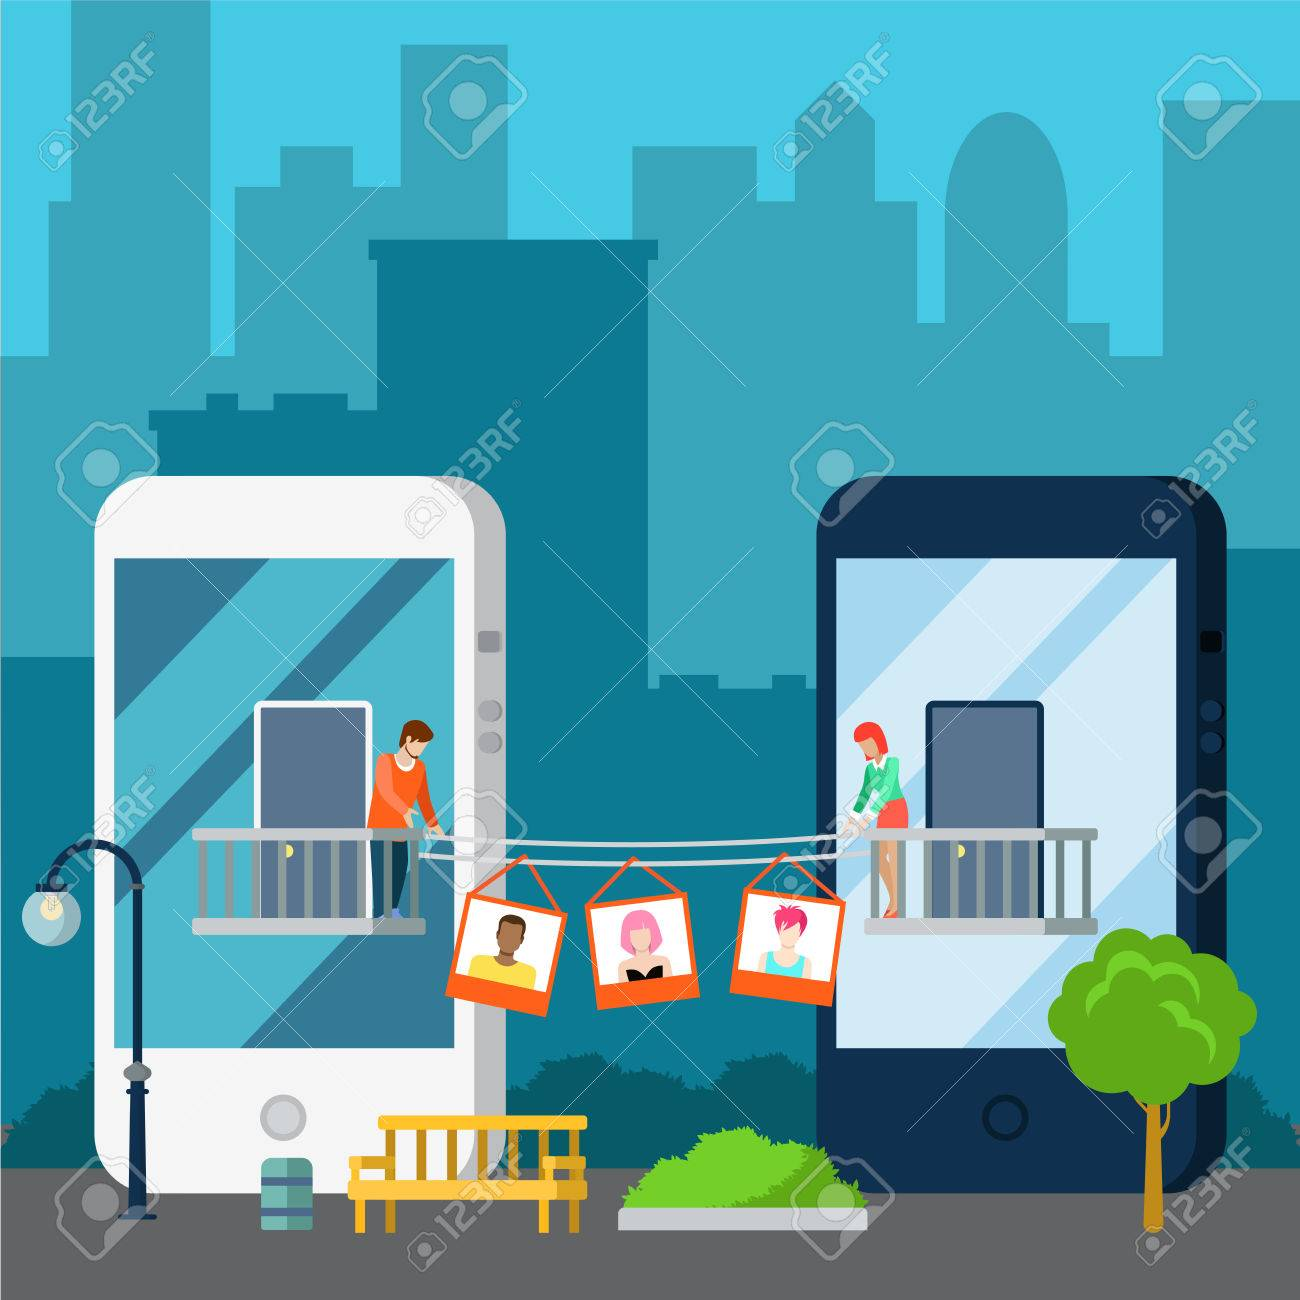 Flat isometric couple sharing photos, standing on balcony on huge smartphones buildings, cityscape background and street exterior vector illustration. 3d isometry Online dating, Virtual love concept. - 64110963